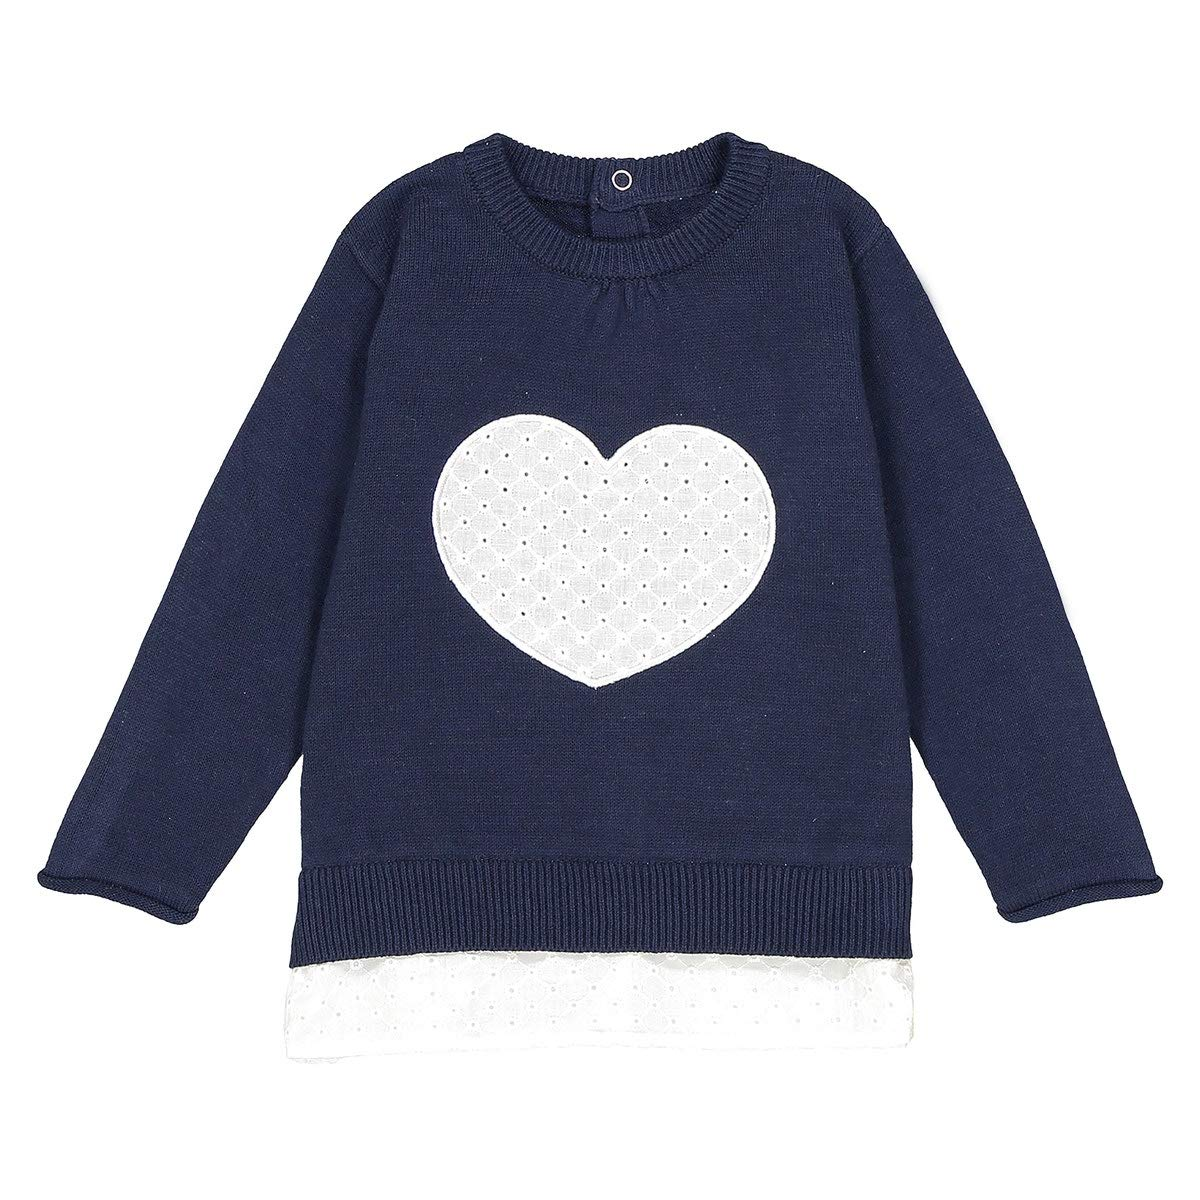 1 Month-3 Years La Redoute Uniross Jumper//Sweater with Embroidered Heart